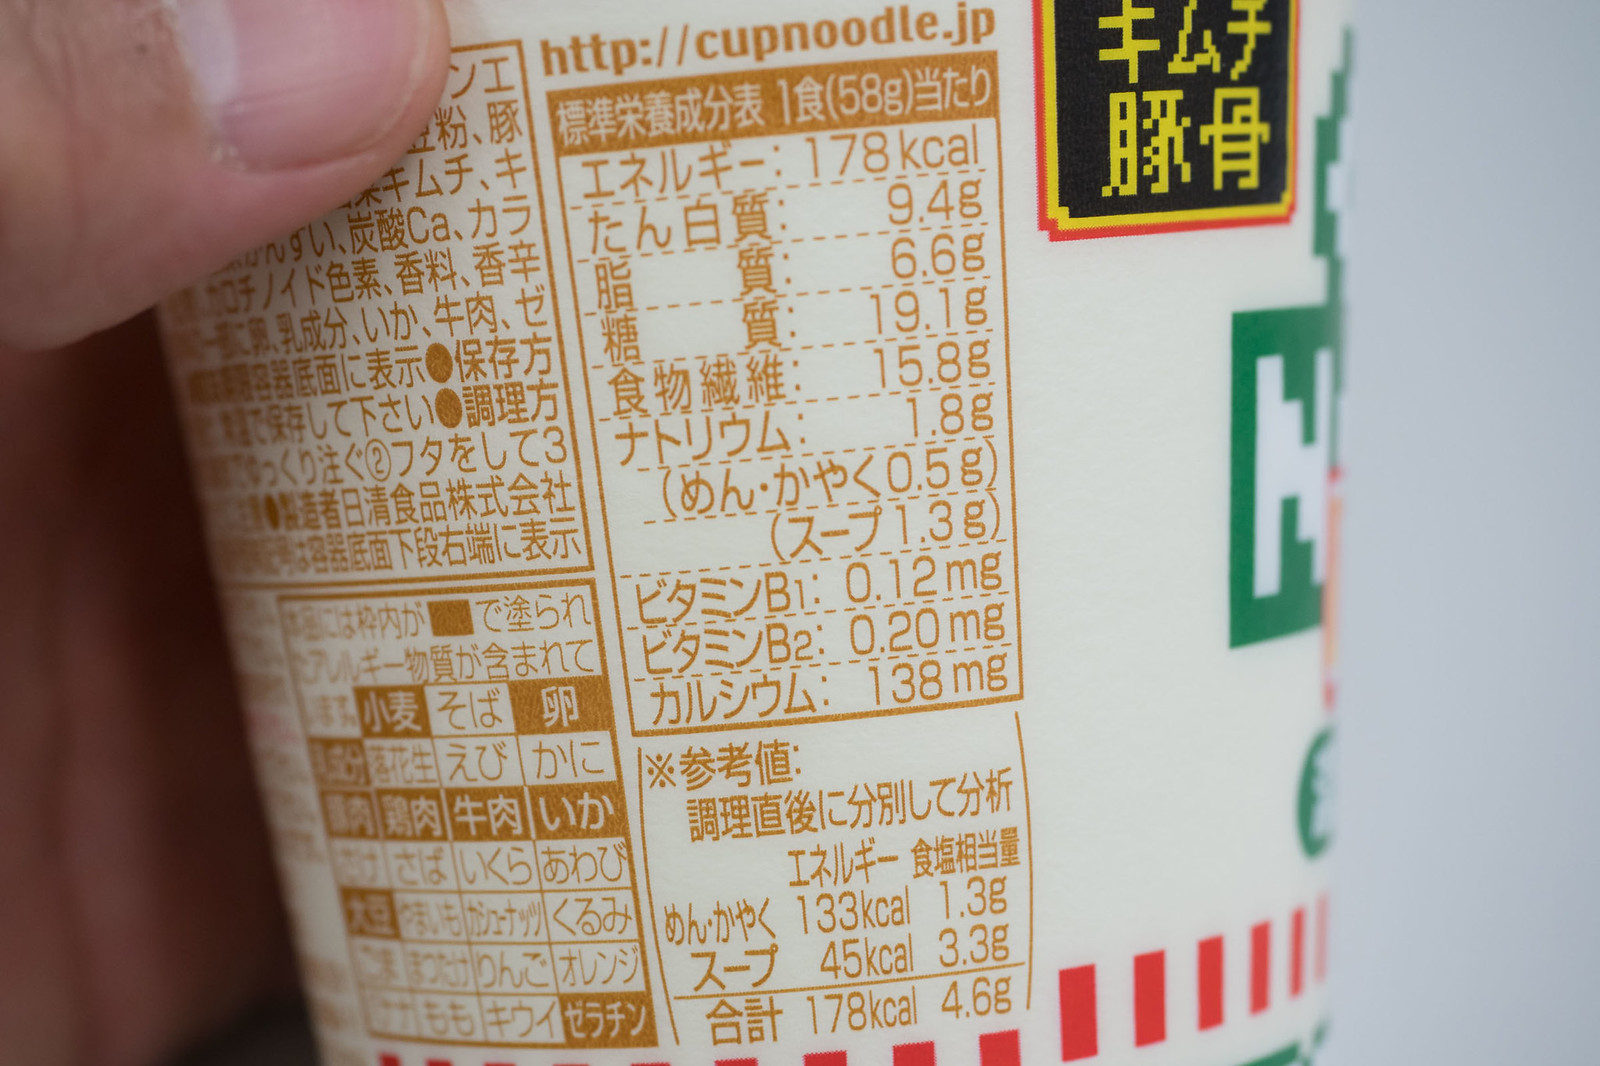 Cup_noodle_nice-4